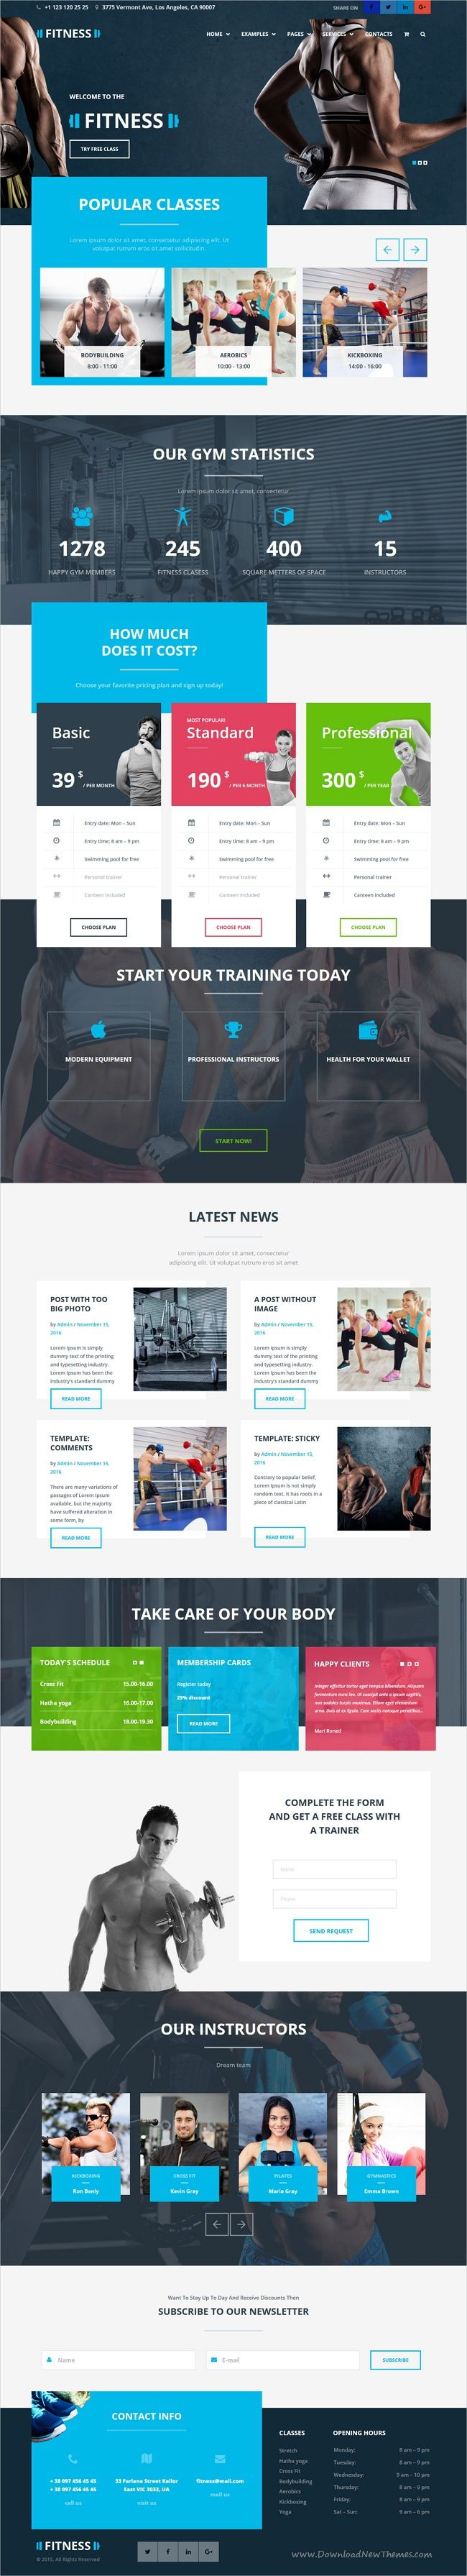 The Fitness is a premium responsive #WordPress theme for #fitness studios, personal #trainers and #gym clubs website 8 header style download now➩ https://themeforest.net/item/the-fitness-gym-yoga-fitness-and-personal-trainer-wordpress-theme/19353563?ref=Datasata